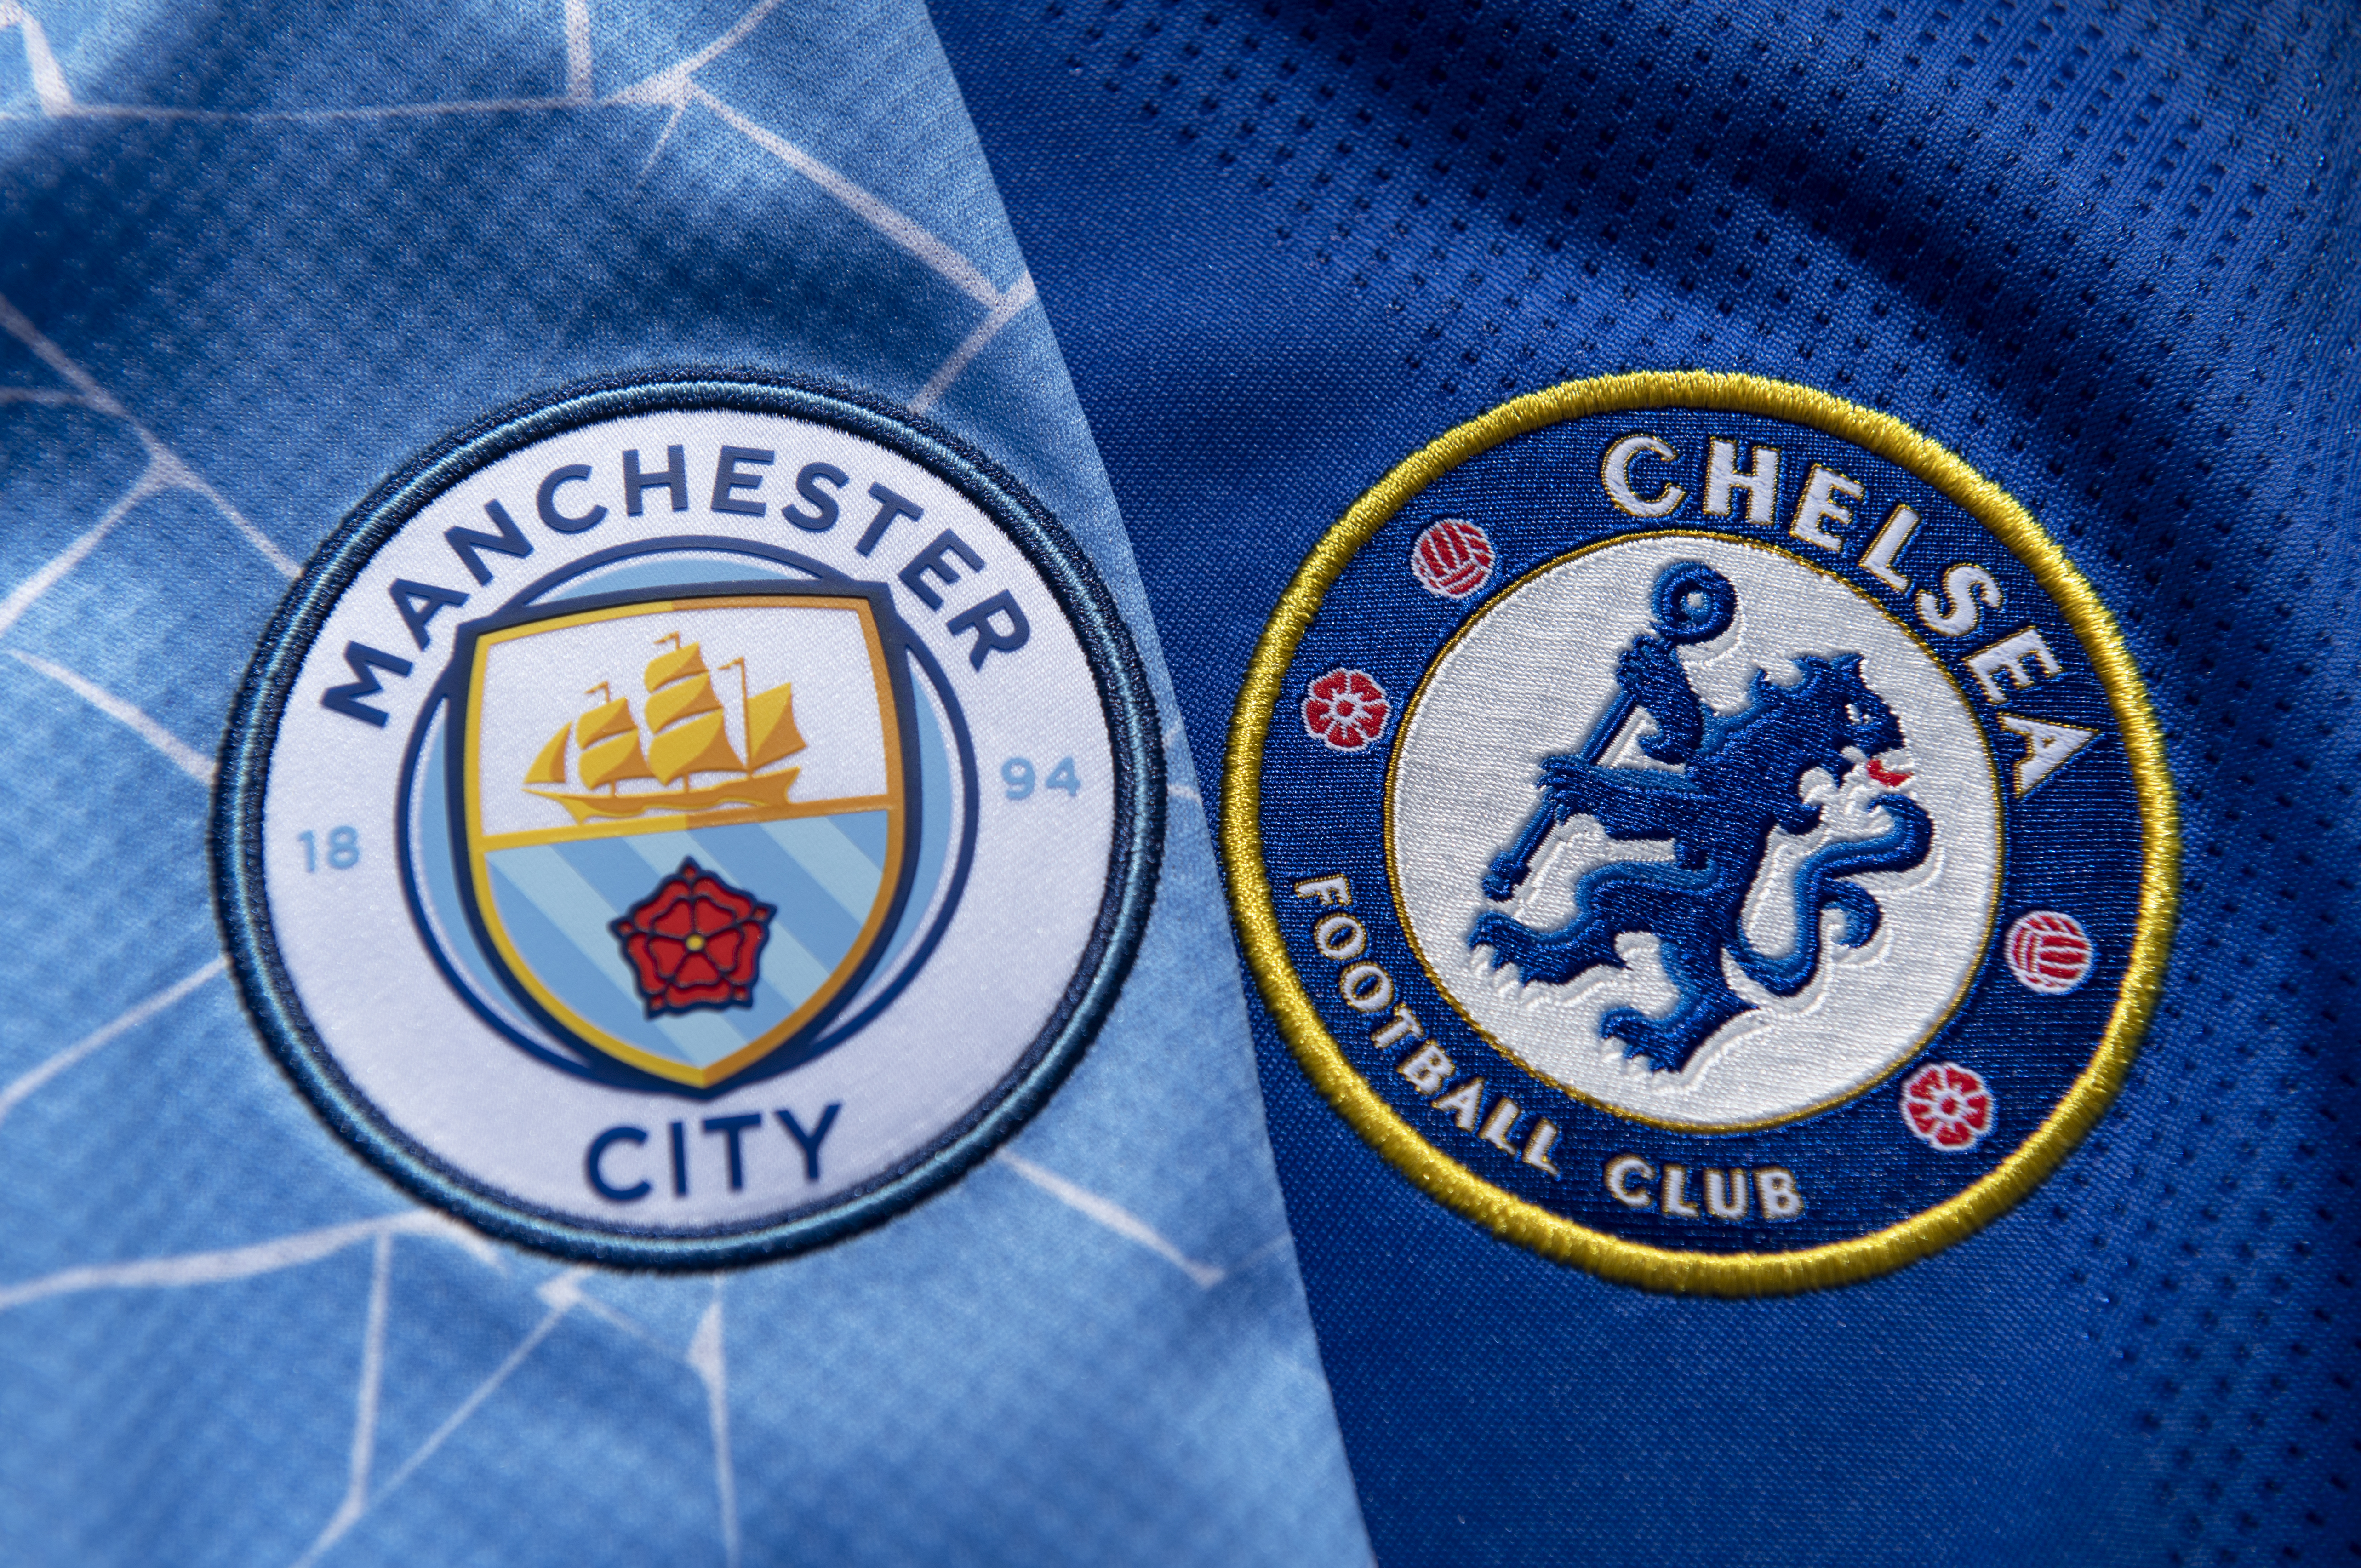 The Chelsea and Manchester City Home Shirts